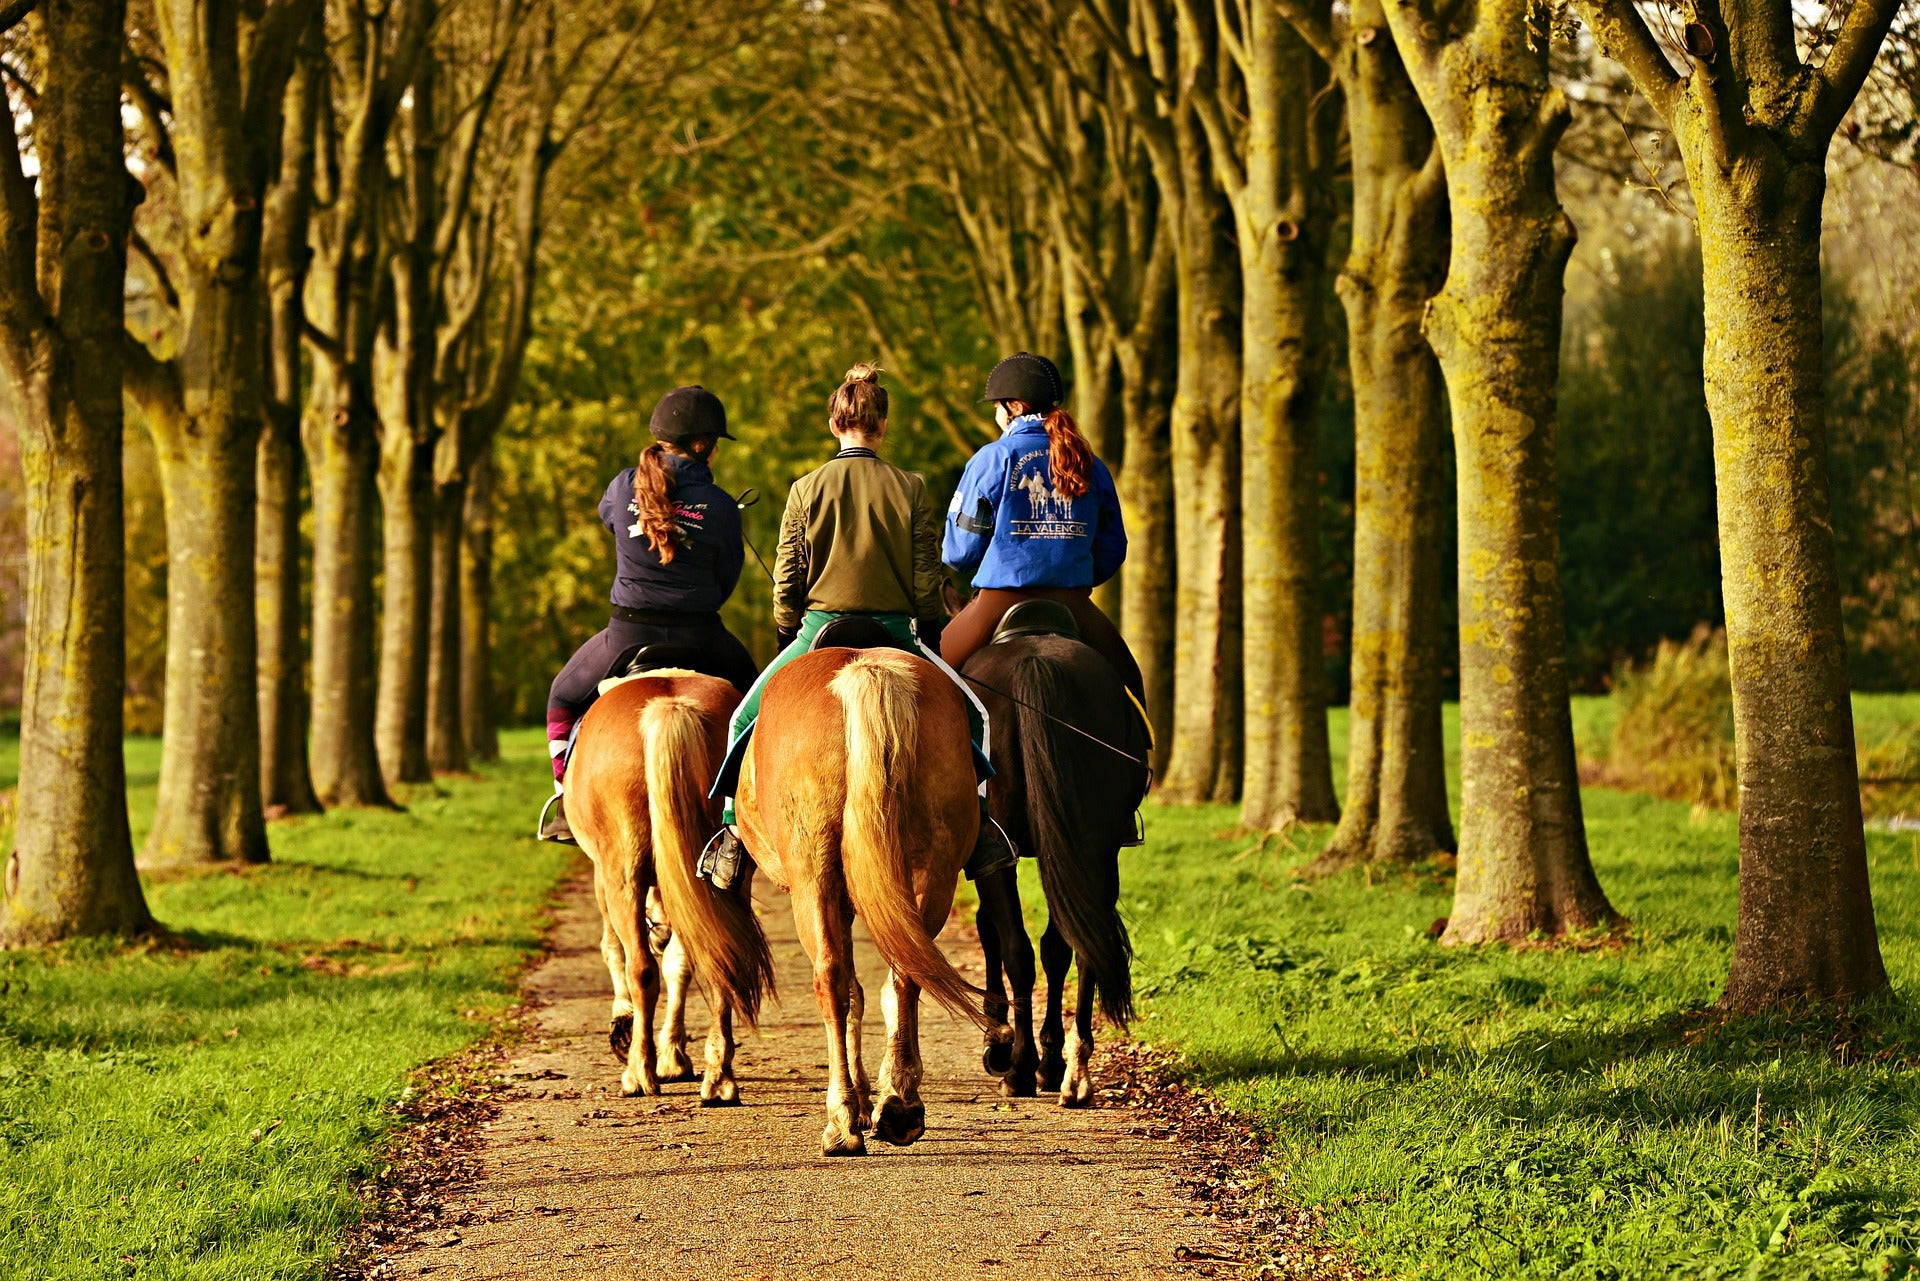 Discover the Best UK Horse Trails with Jodie Kidd